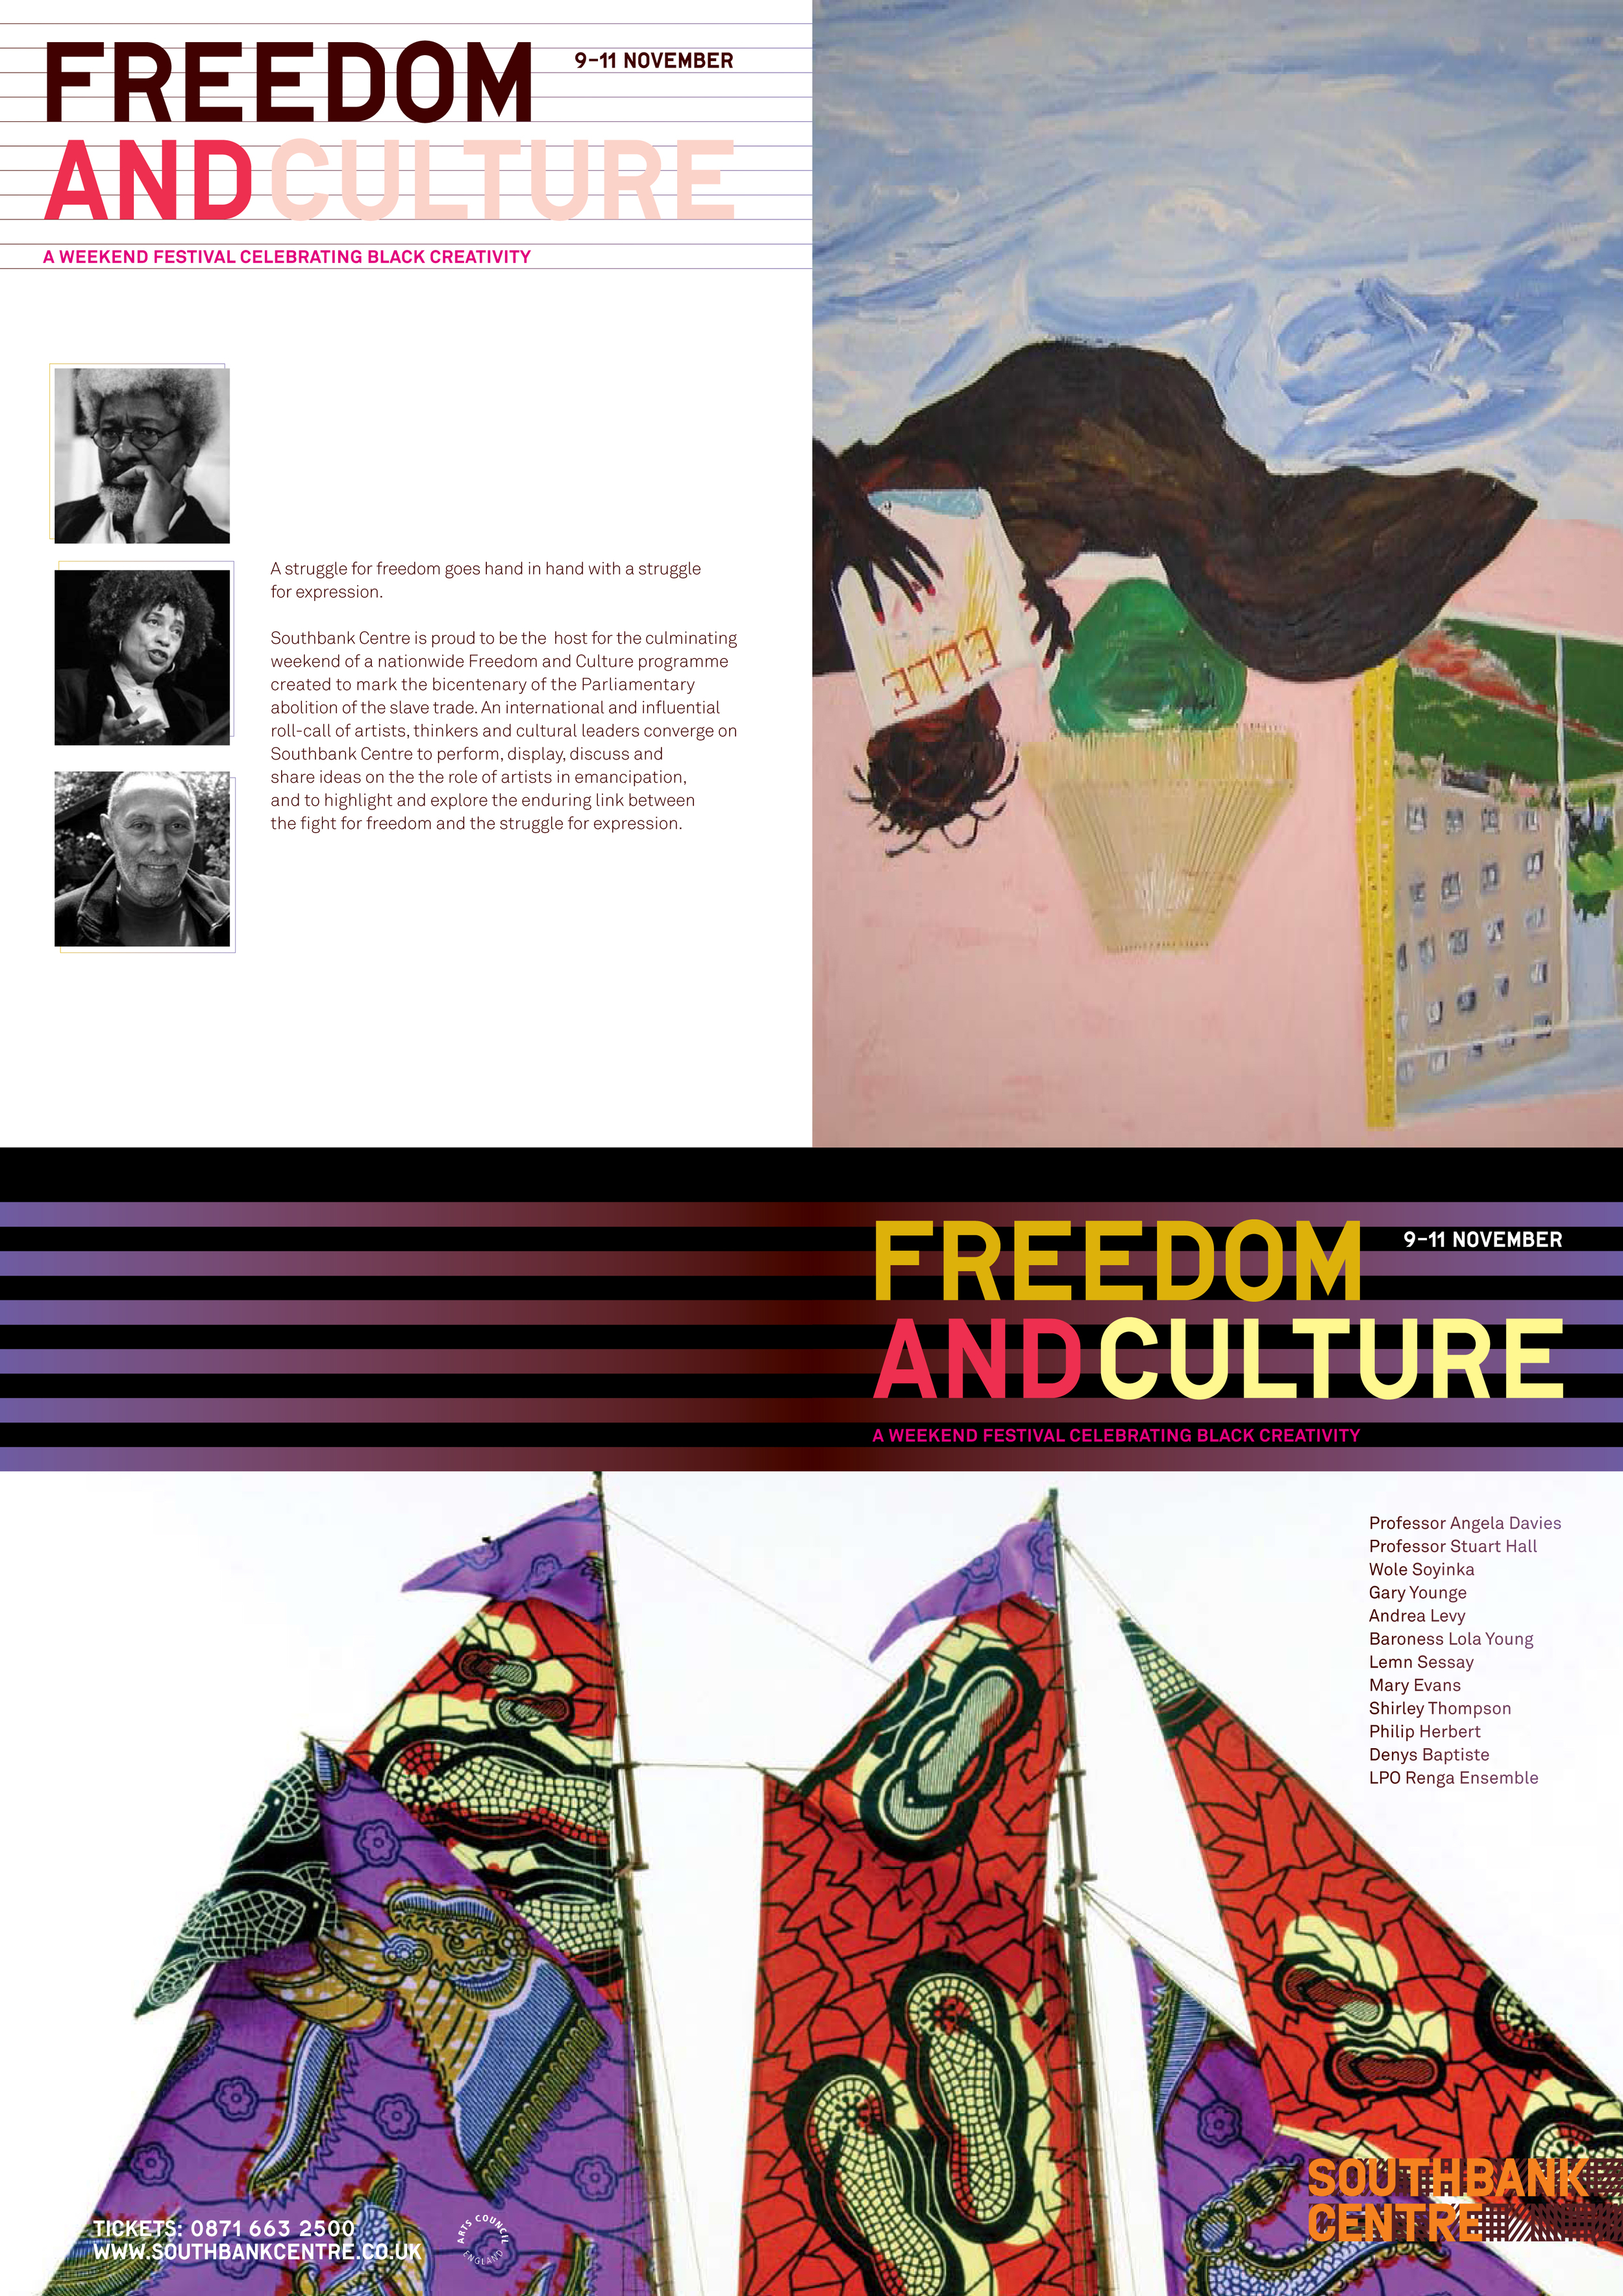 Freedom and Culture A3-1.jpg